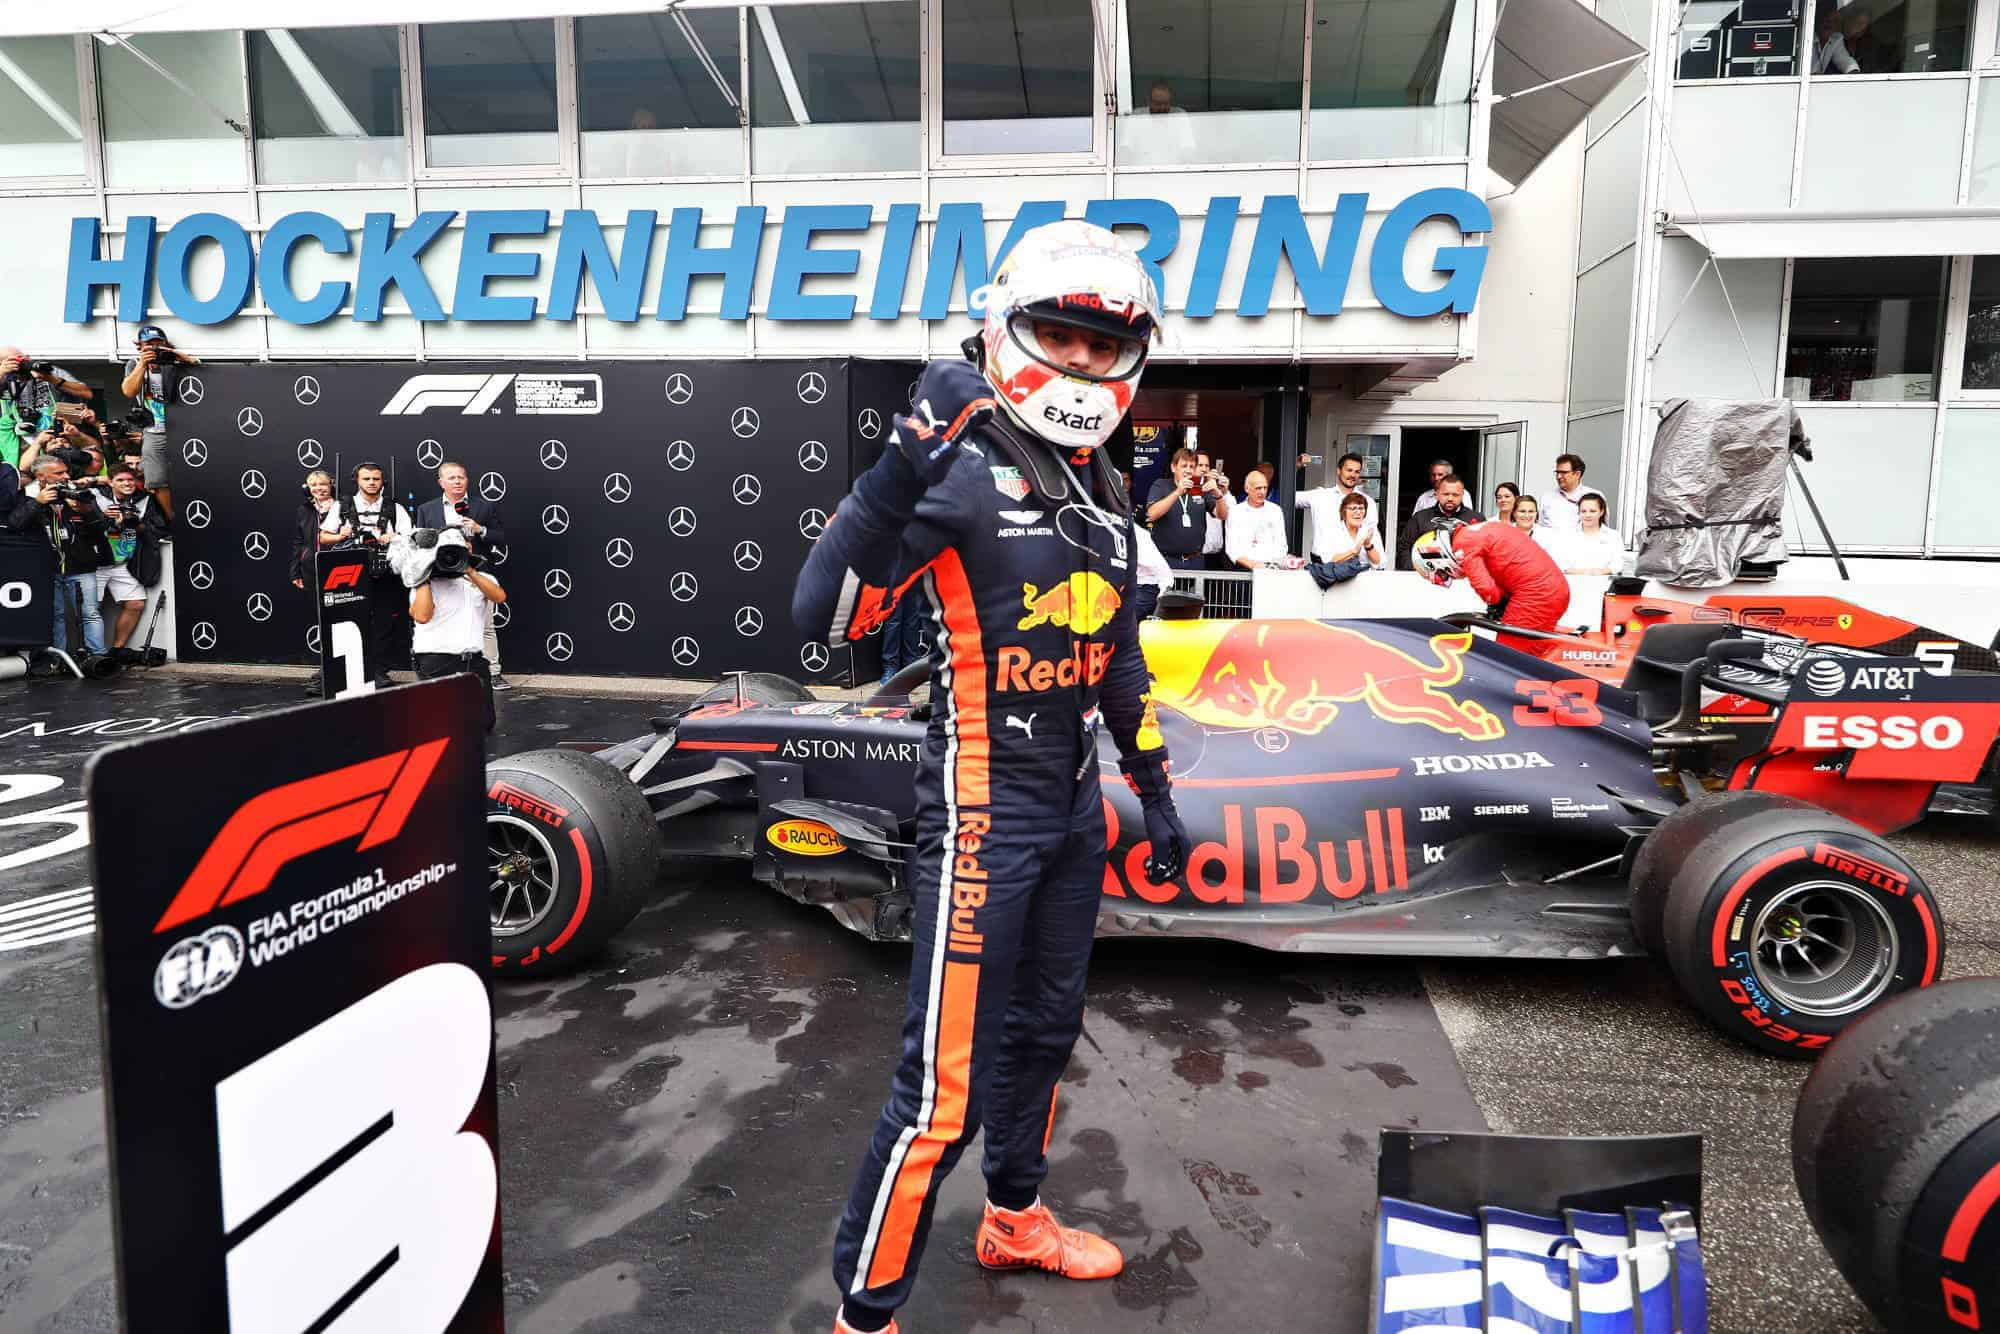 Verstappen wins German GP F1 2019 parc ferme with his Red Bull RB15 Photo Red Bull